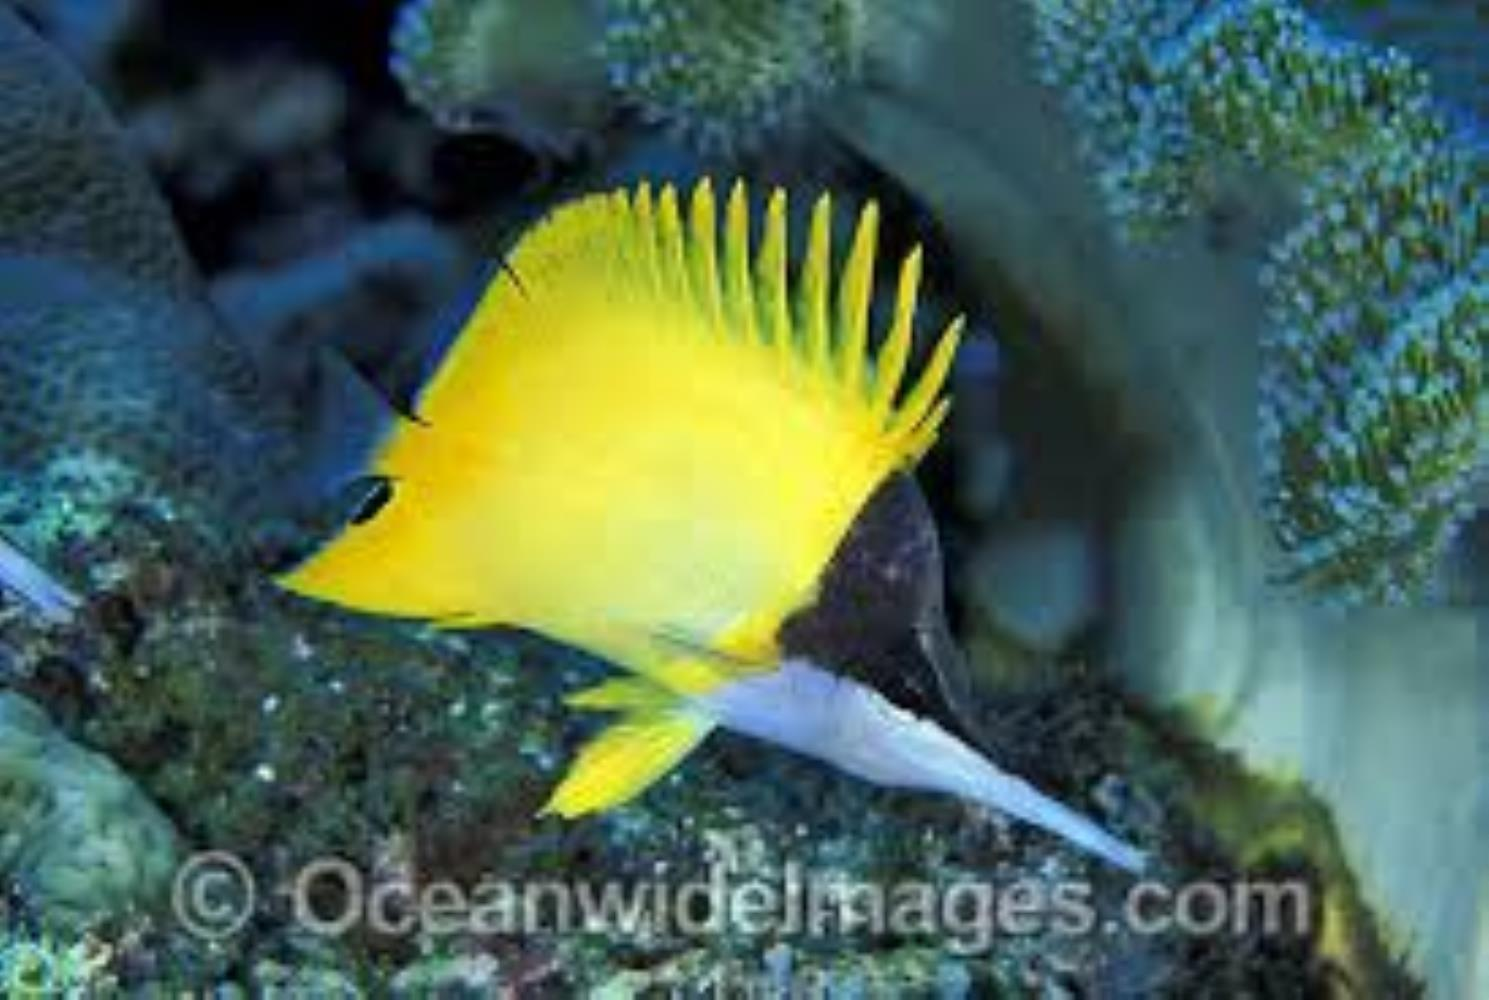 Big Longnose Butterflyfish